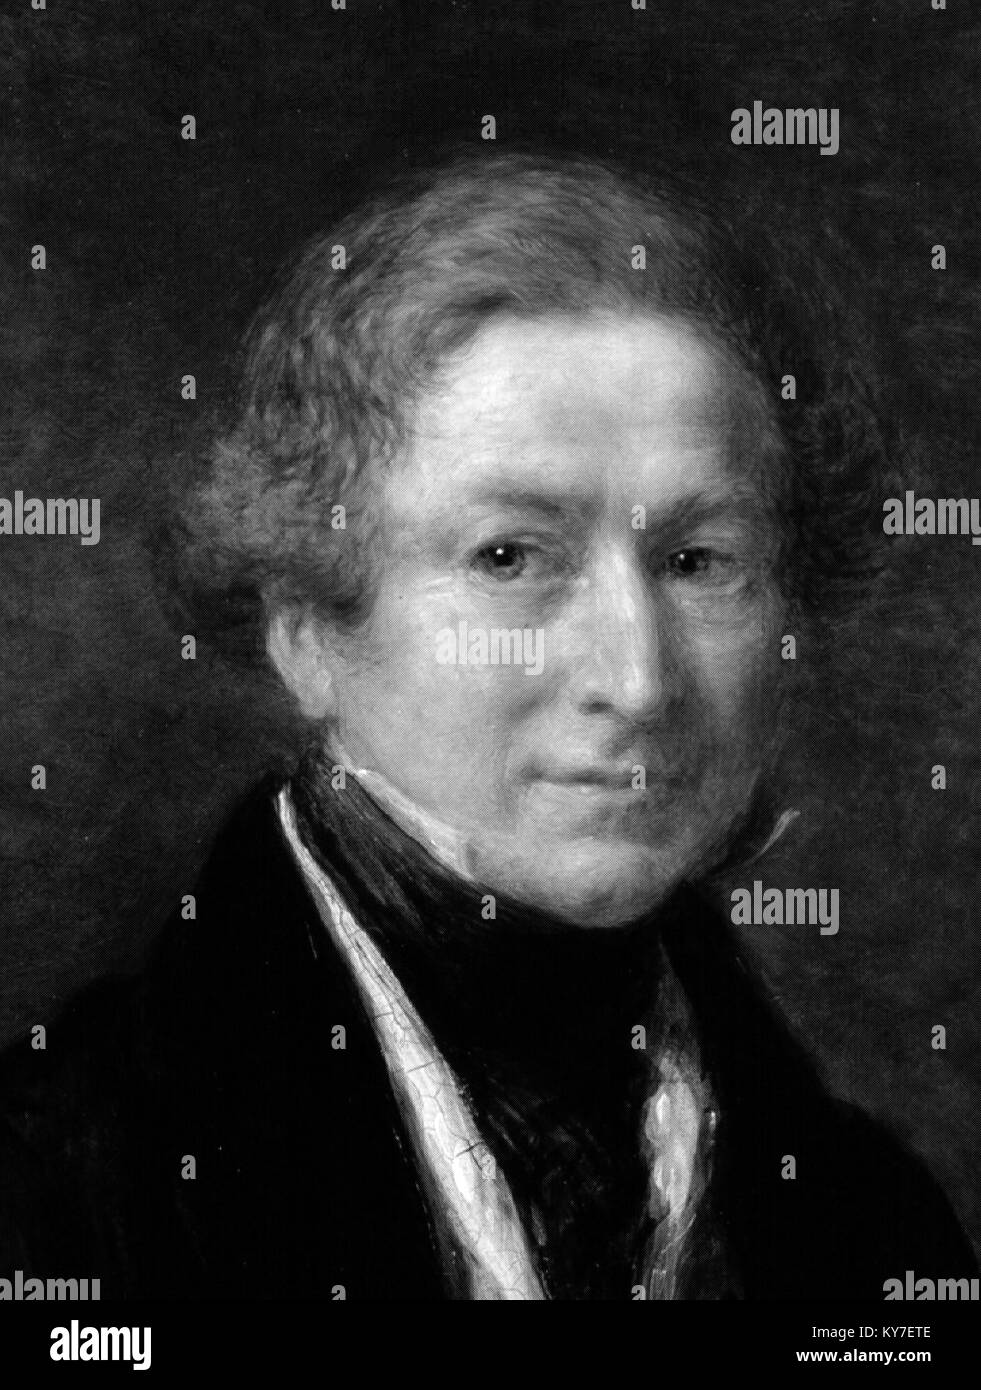 Sir Robert Peel (1788-1850), who served as British Prime Minister on two occasions and is regarded as the founder - Stock Image